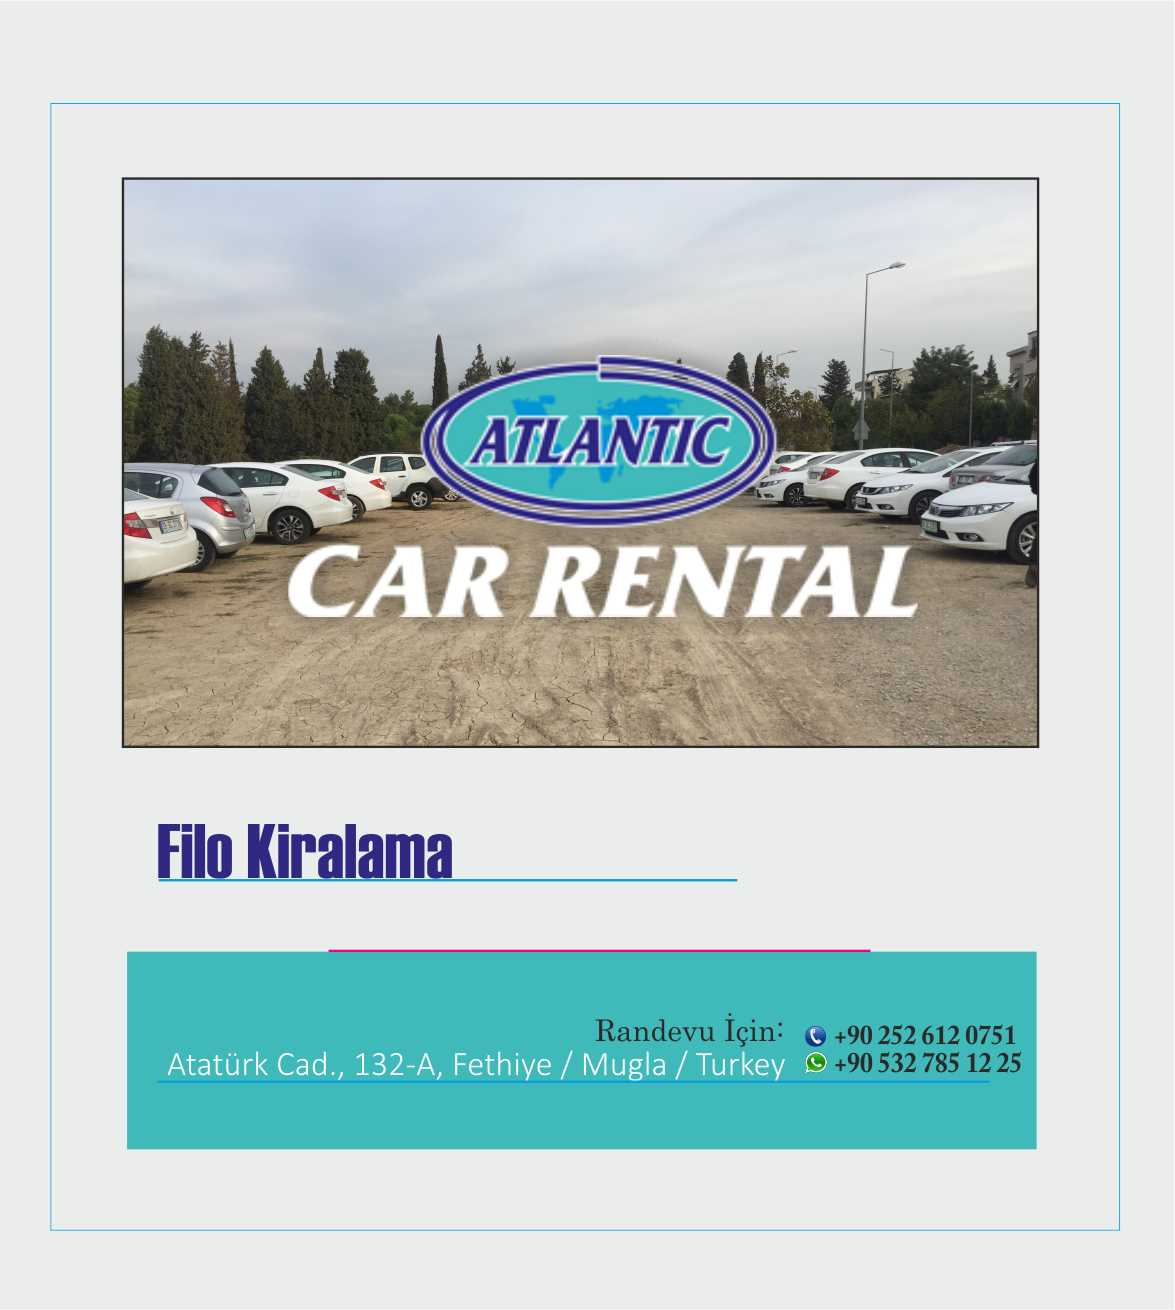 köycegiz fleet leasing %>